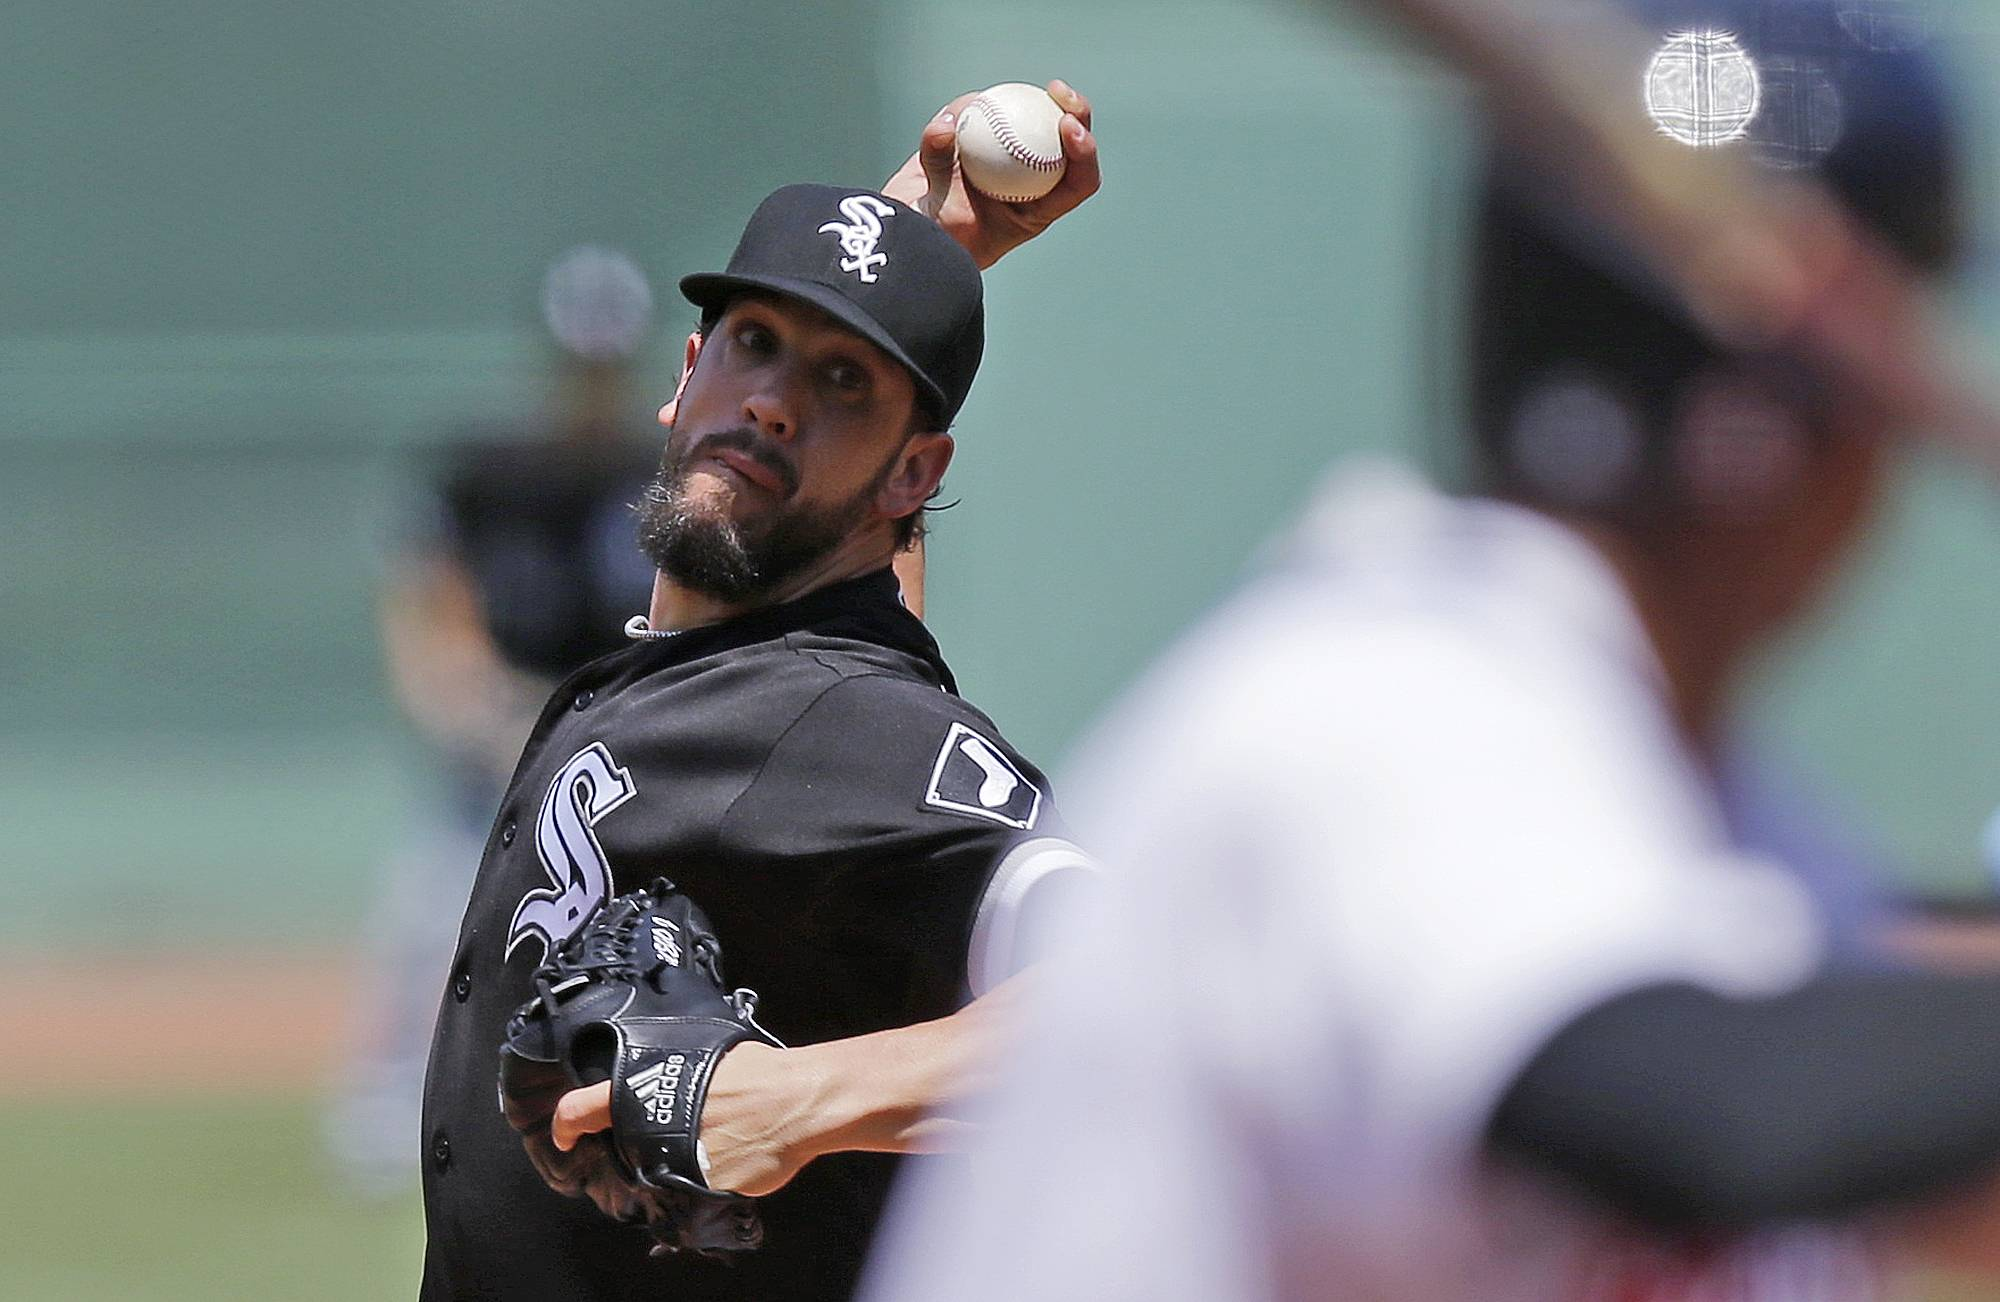 Chicago White Sox starting pitcher James Shields delivers during the first inning of a baseball game against the Boston Red Sox at Fenway Park, Thursday, June 23, 2016, in Boston. (AP Photo/Charles Krupa)